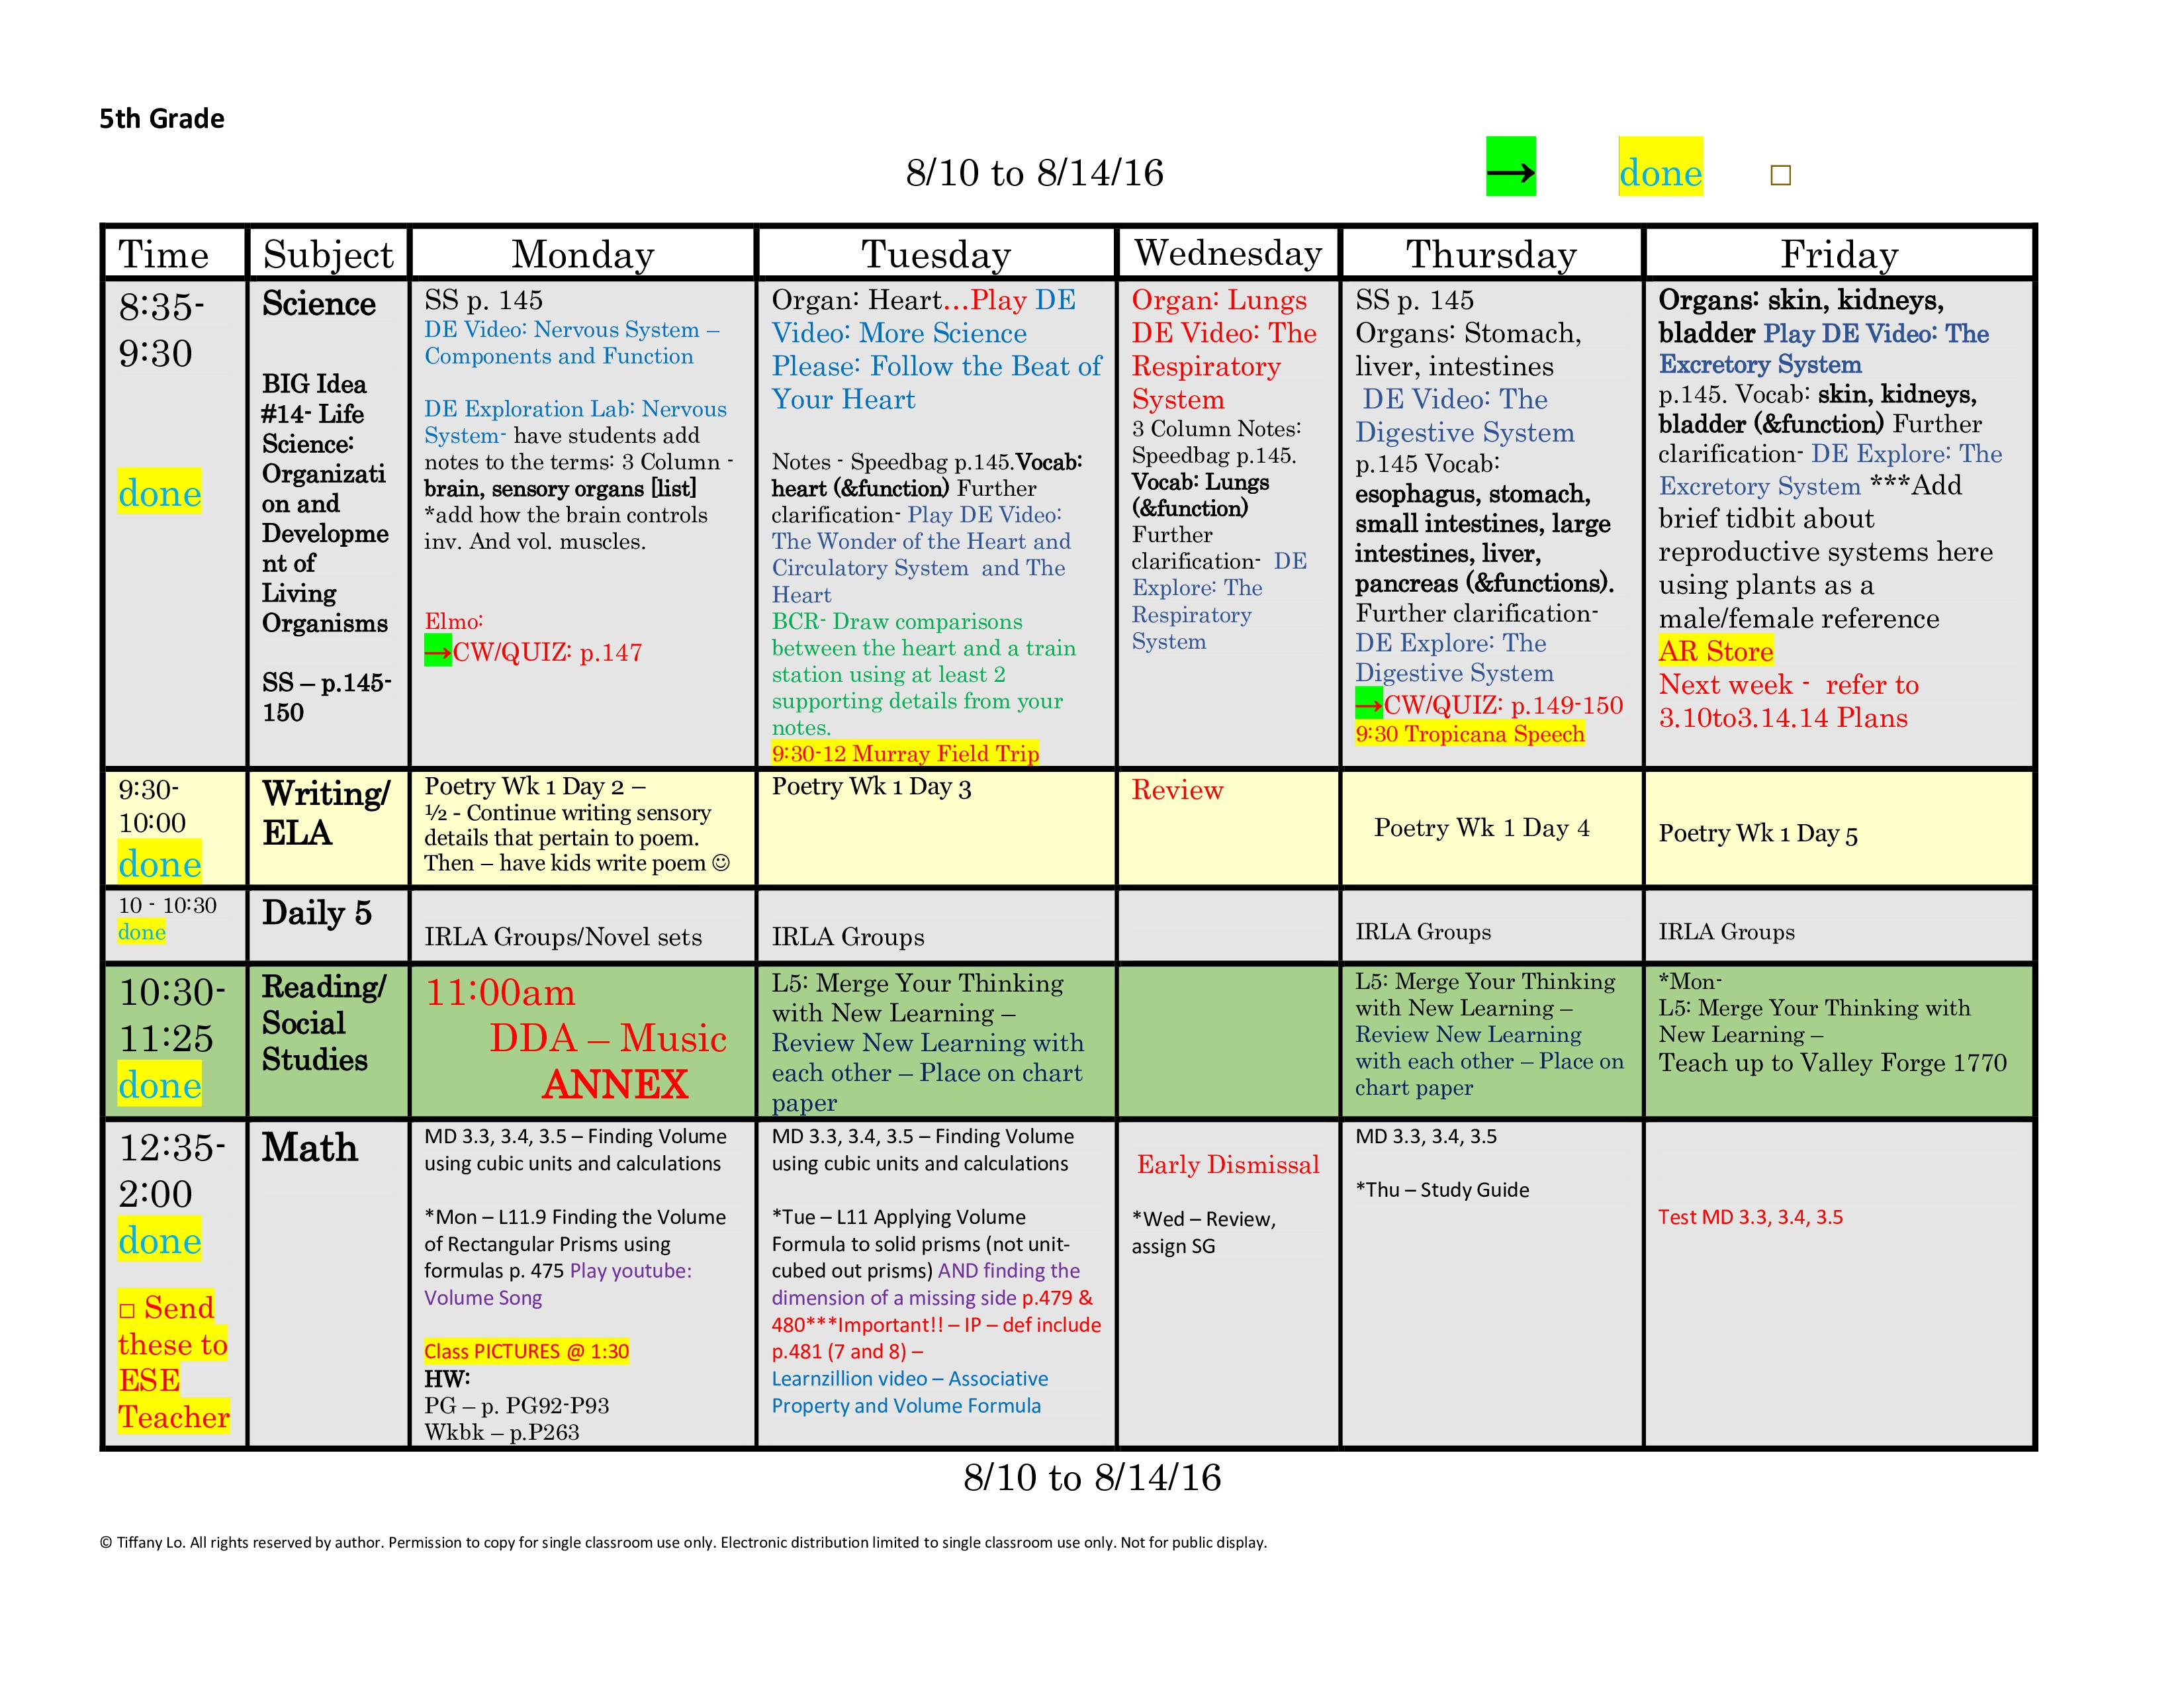 5th Fifth Grade Lesson Plan Template One Week One Page Glance Of All Subjects With Common Core